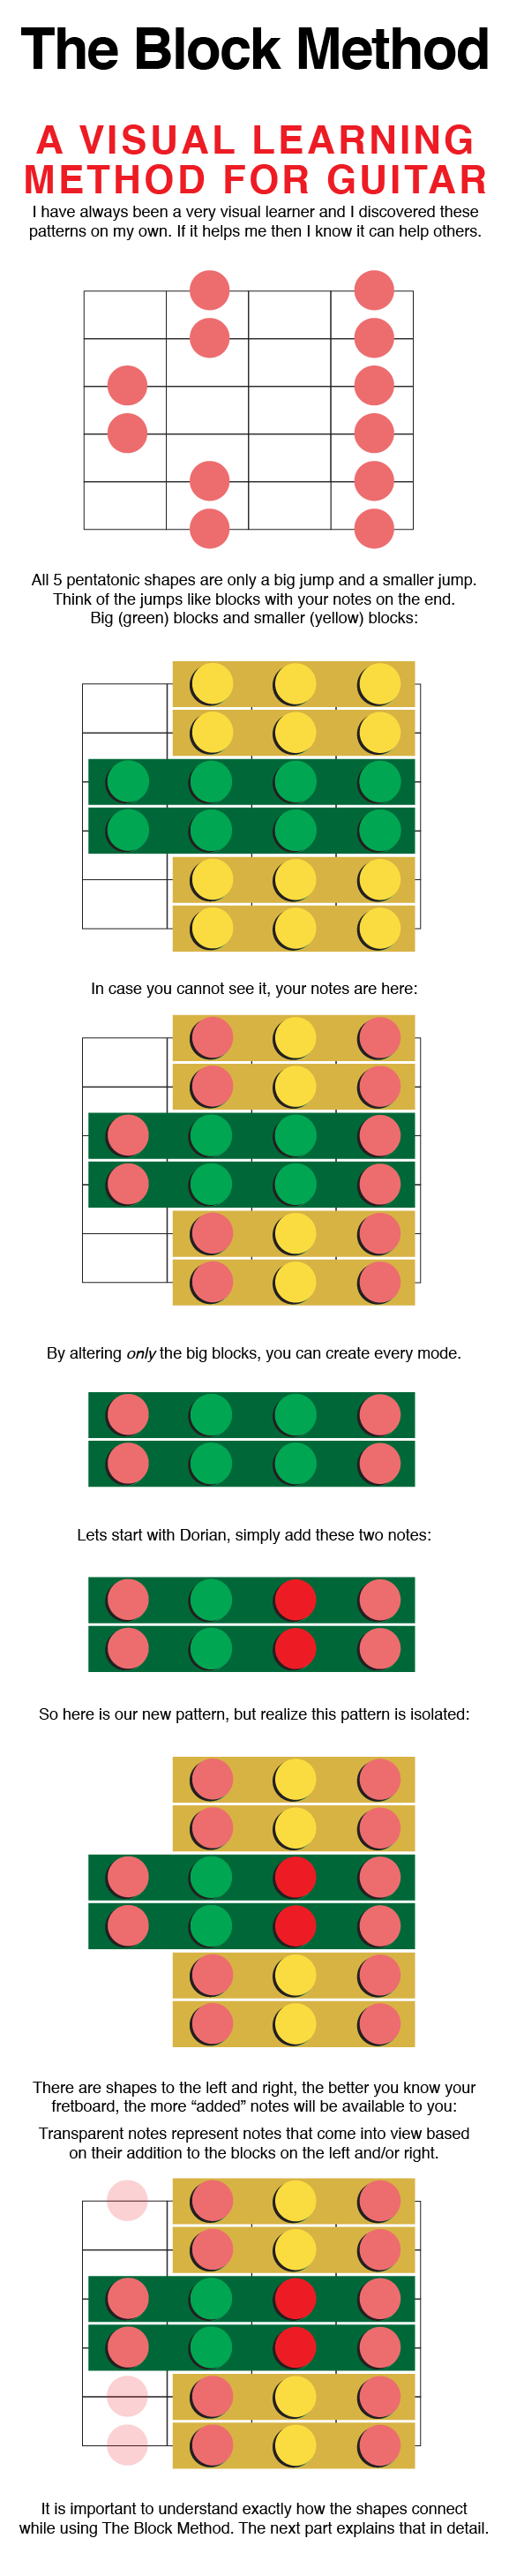 Guitar Fretboard Understanding Block Method